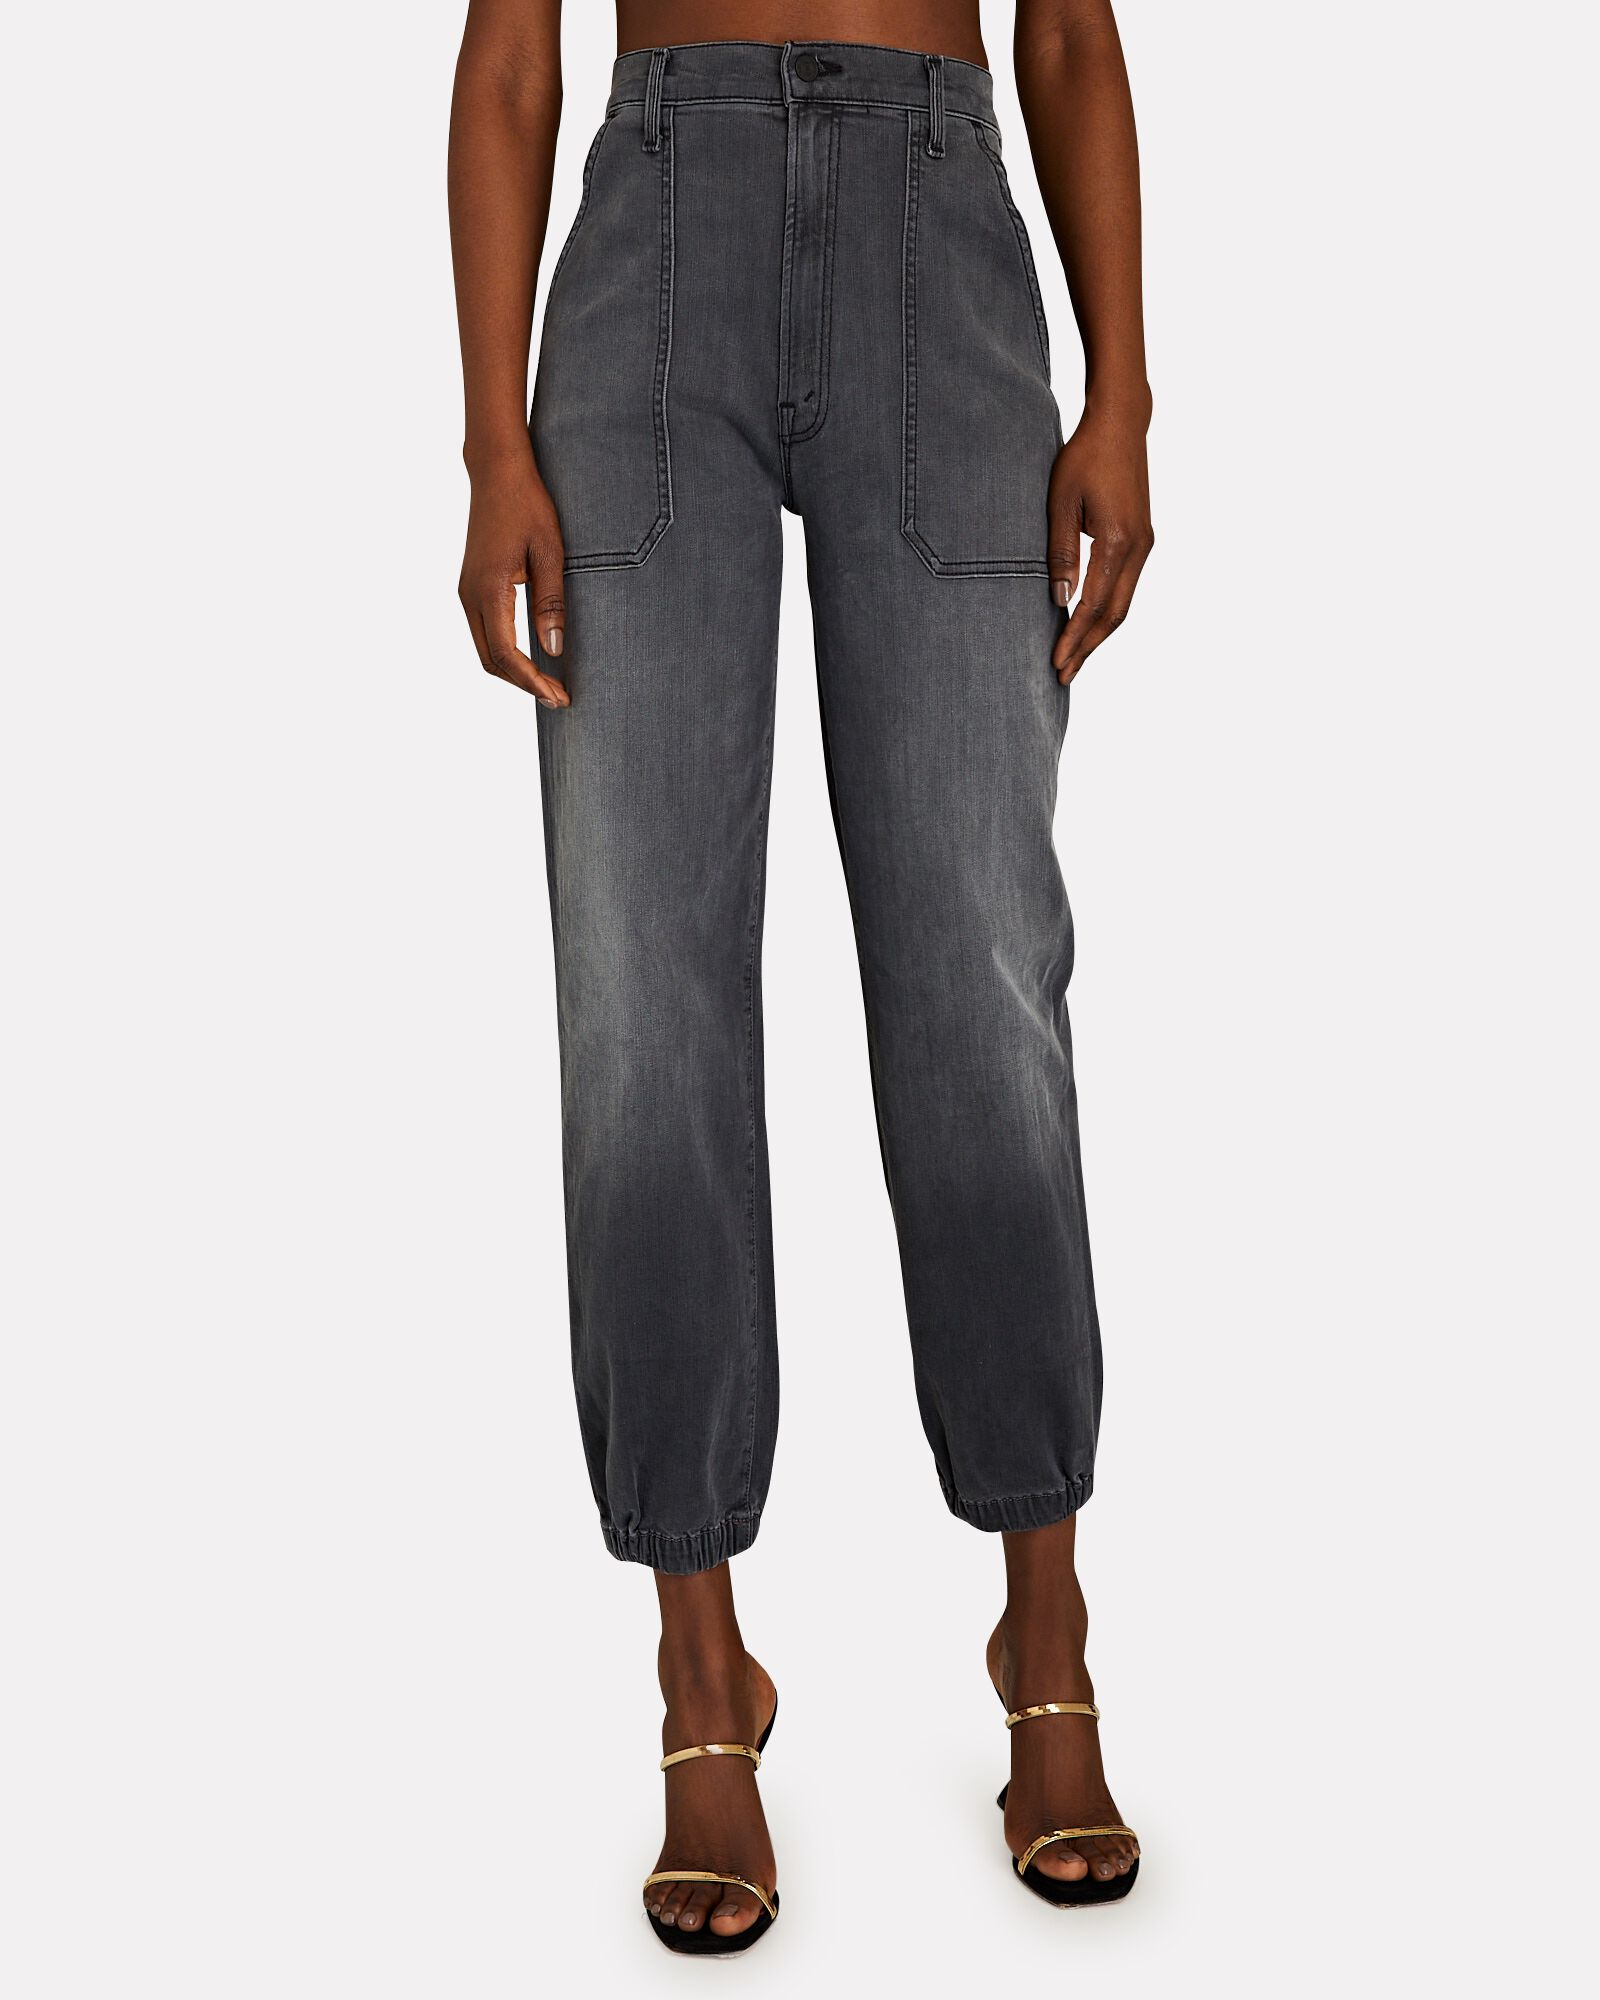 The Wrapper Patch Springy Ankle Jeans, DANCING IN THE MOONLIGHT, hi-res